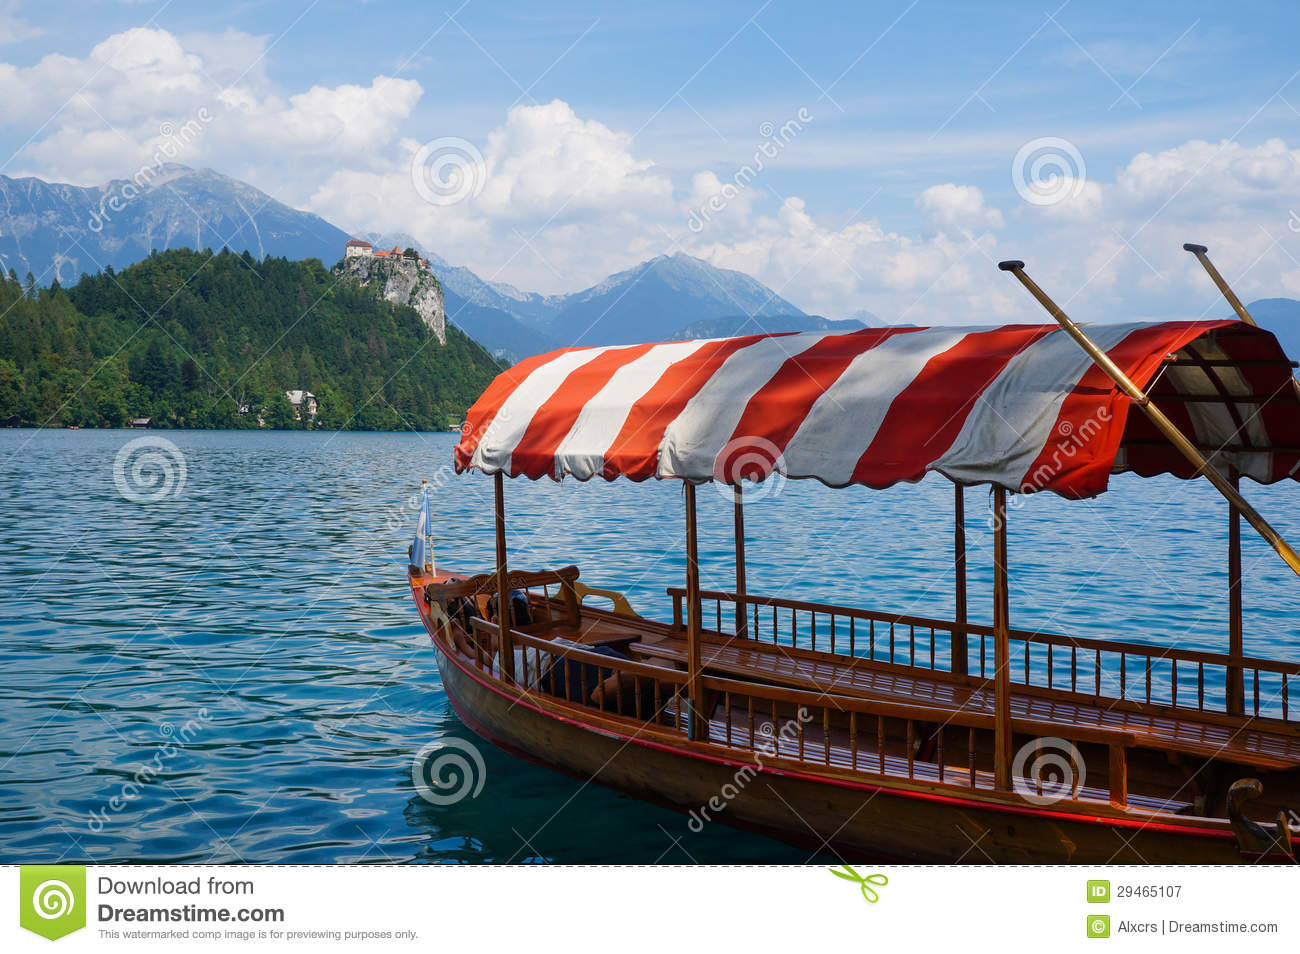 Row boat on Bled Lake, with Bled Castle in the background, Slovenia.